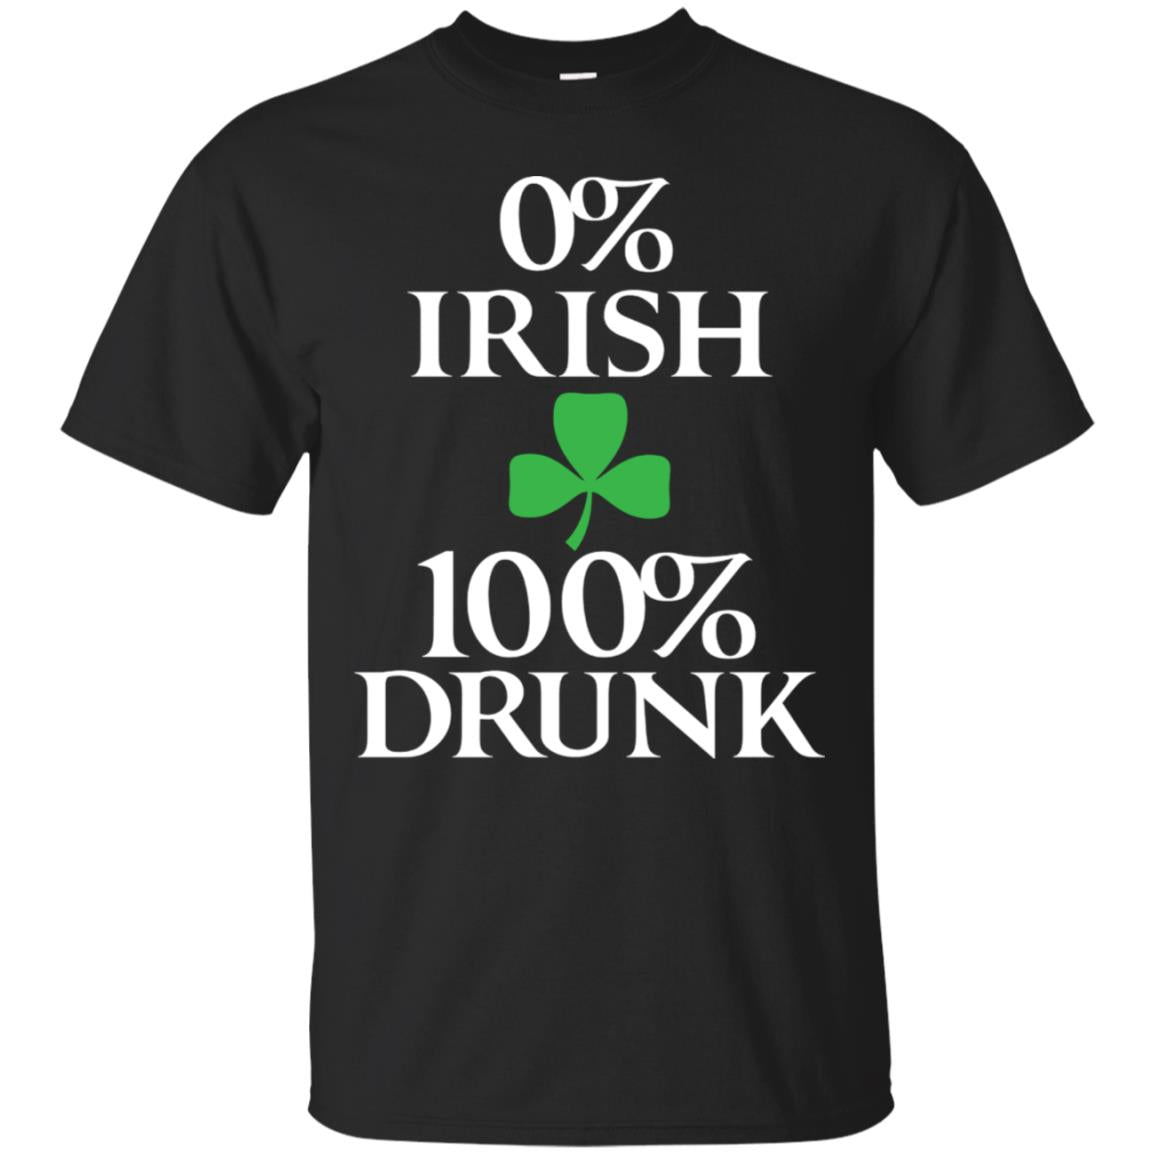 0% Irish 100% Drunk St Patrick's Day Shirt 99promocode